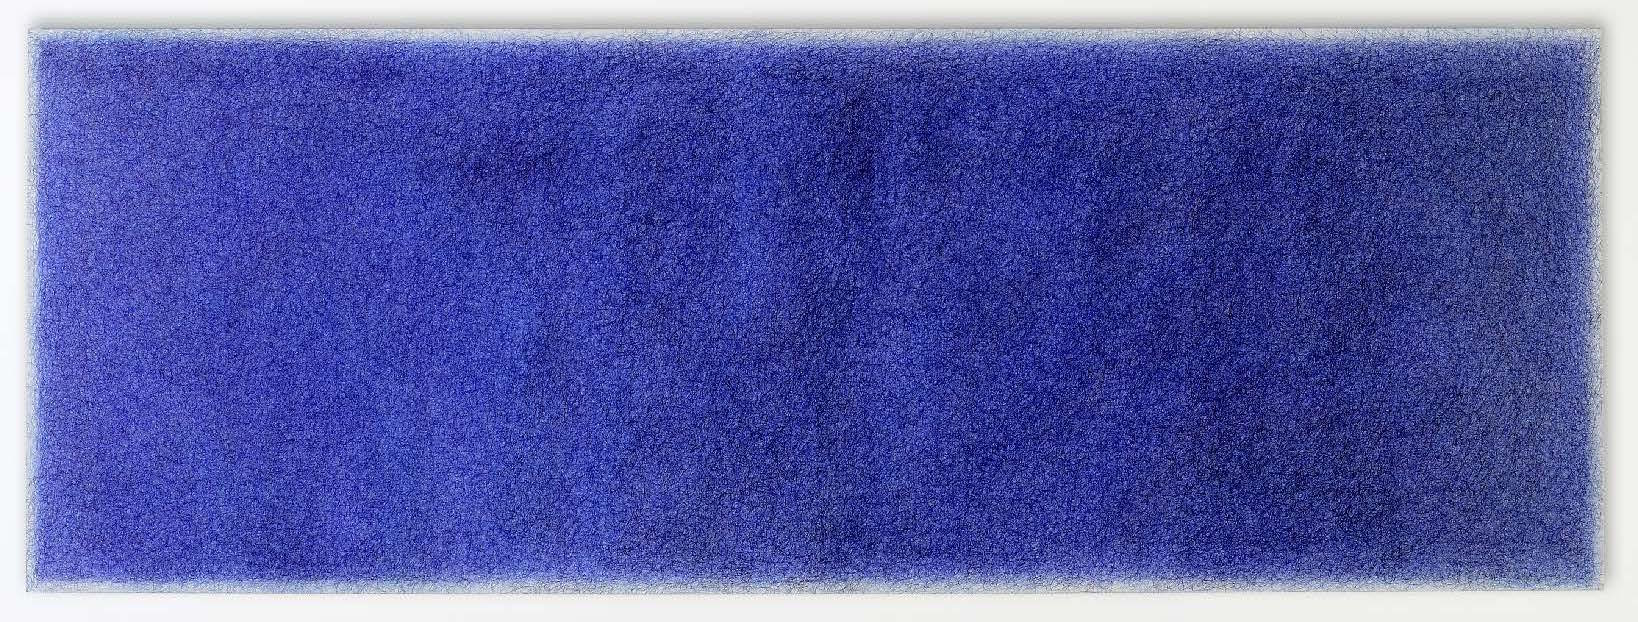 Avant-testo, 22-6-99, ballpoint pen on canvas on wooden stretcher, 62 x 172 cm, 1999